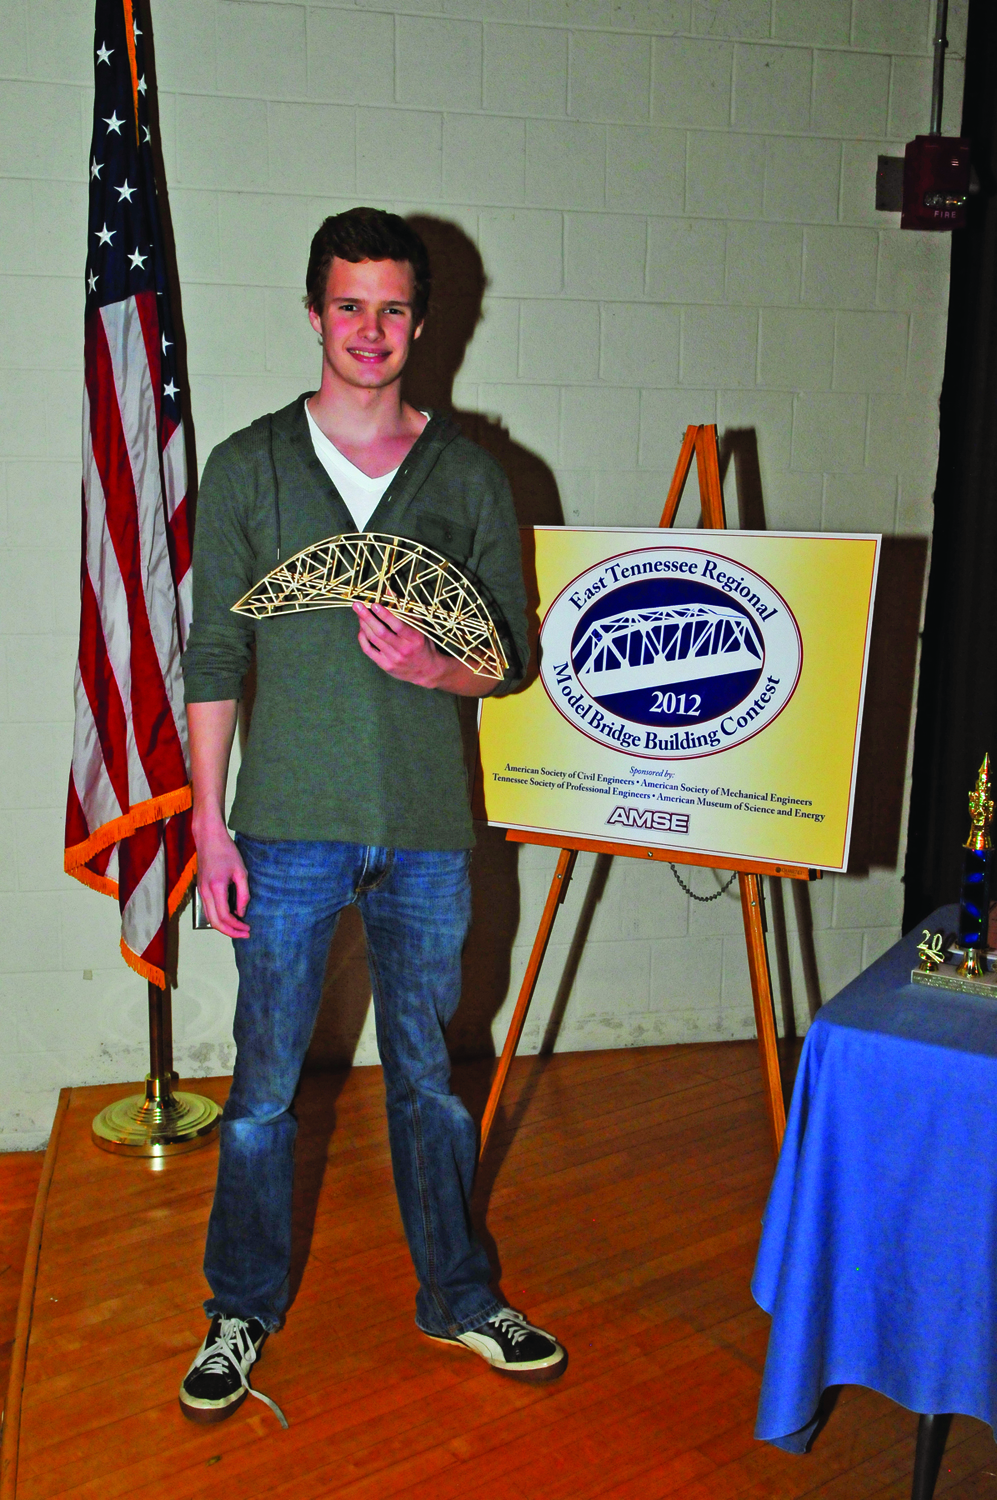 Cameron Bard, Bearden High School student, received first place in the Aesthetics category for his bridge in the East Tennessee Model Bridge Building Contest.